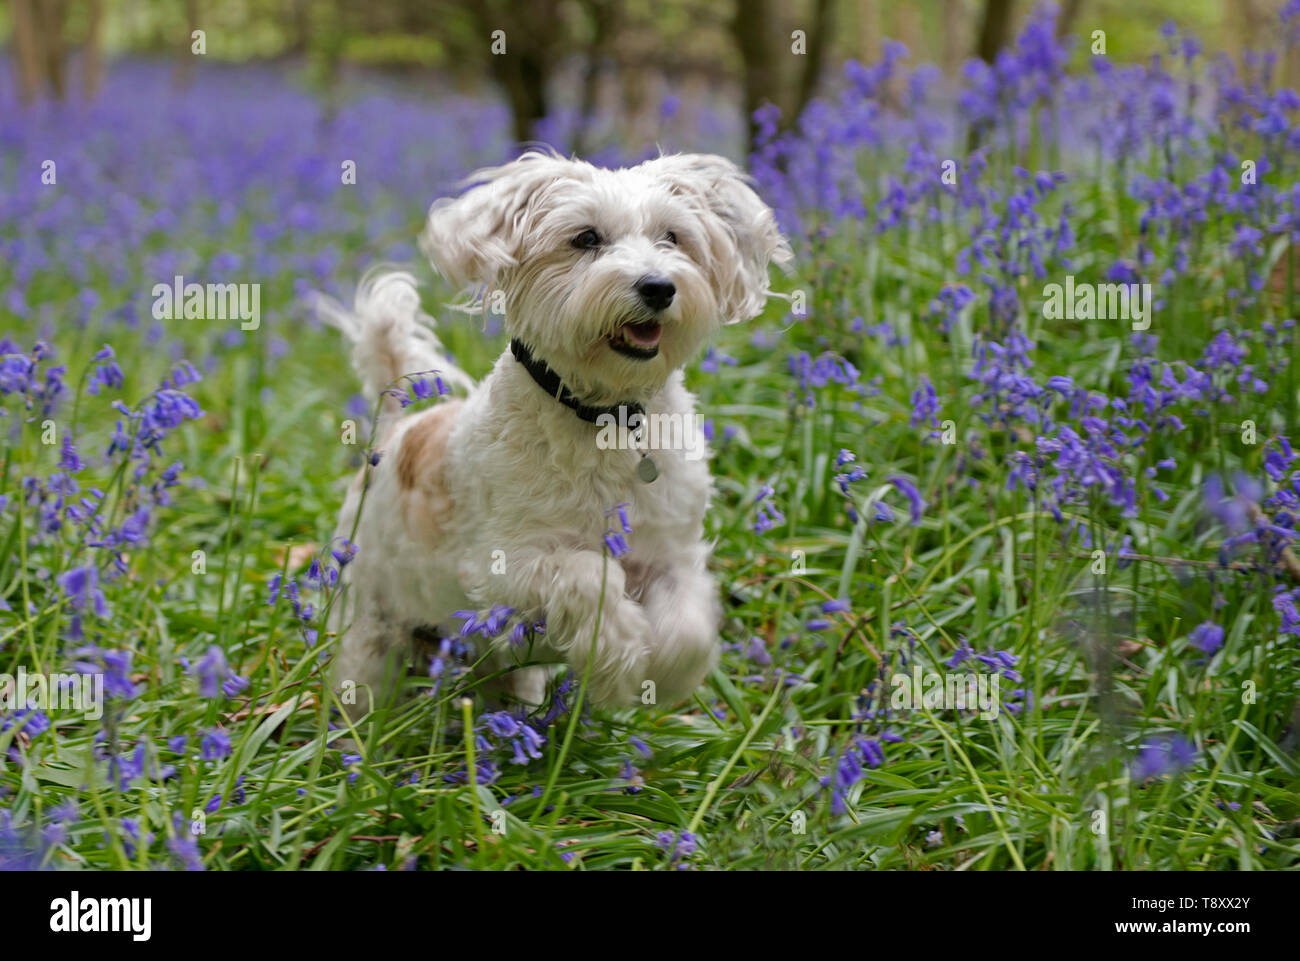 Westie and Jack Russell cross dog-Canis lupus familiaris runs amongst Bluebells-Hyacinthoides non-scripta. - Stock Image